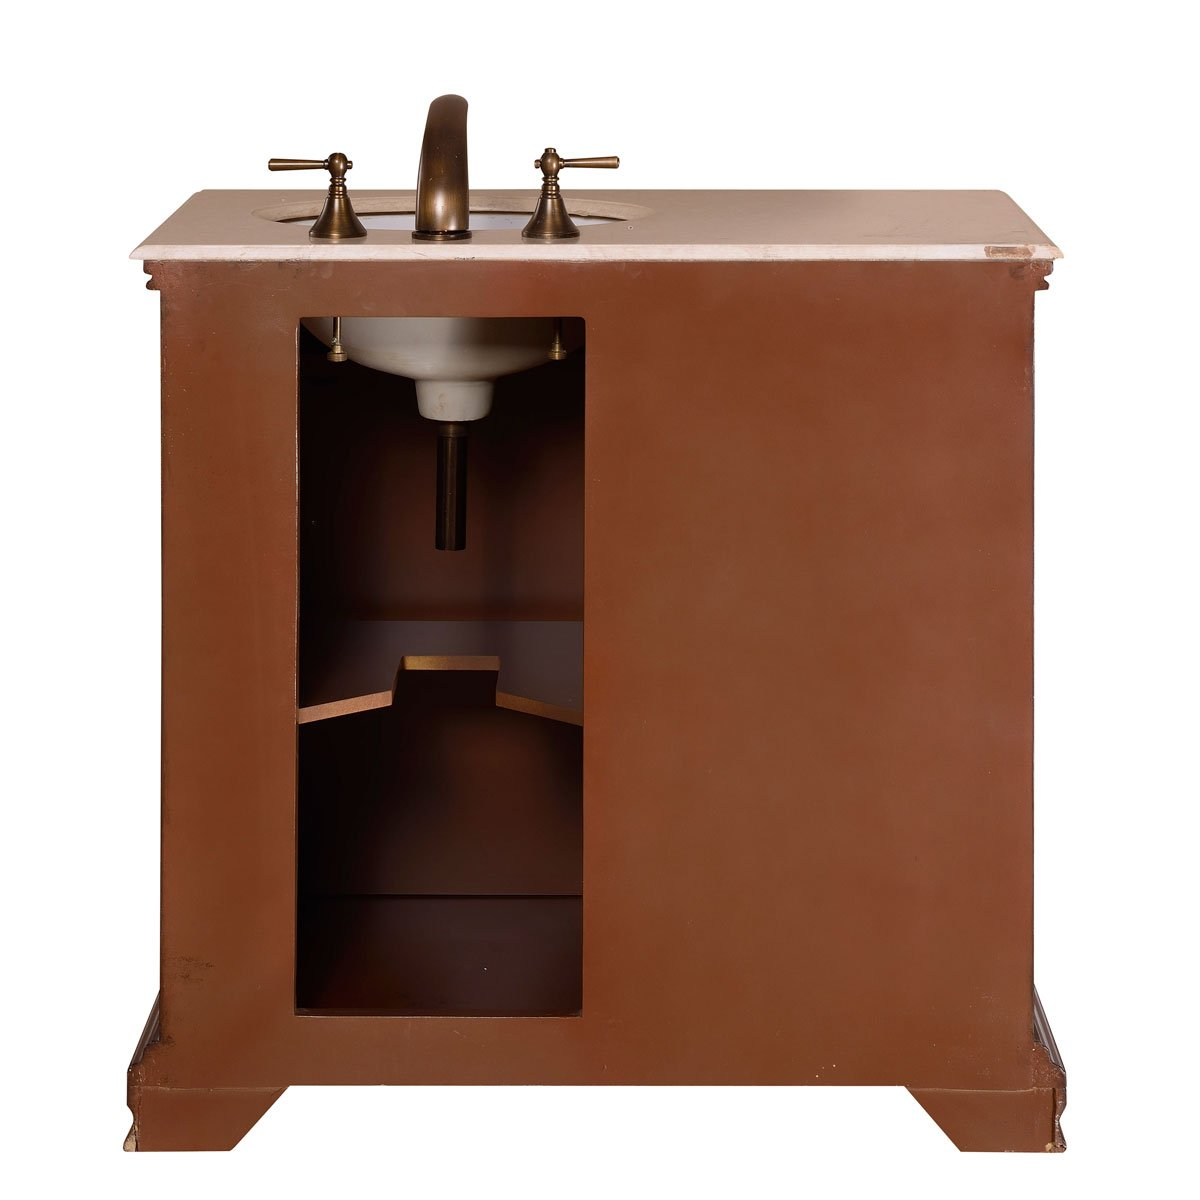 Silkroad Exclusive Single Right Sink Bathroom Vanity with Furniture Cabinet, 36-Inch by Silkroad Exclusive (Image #6)